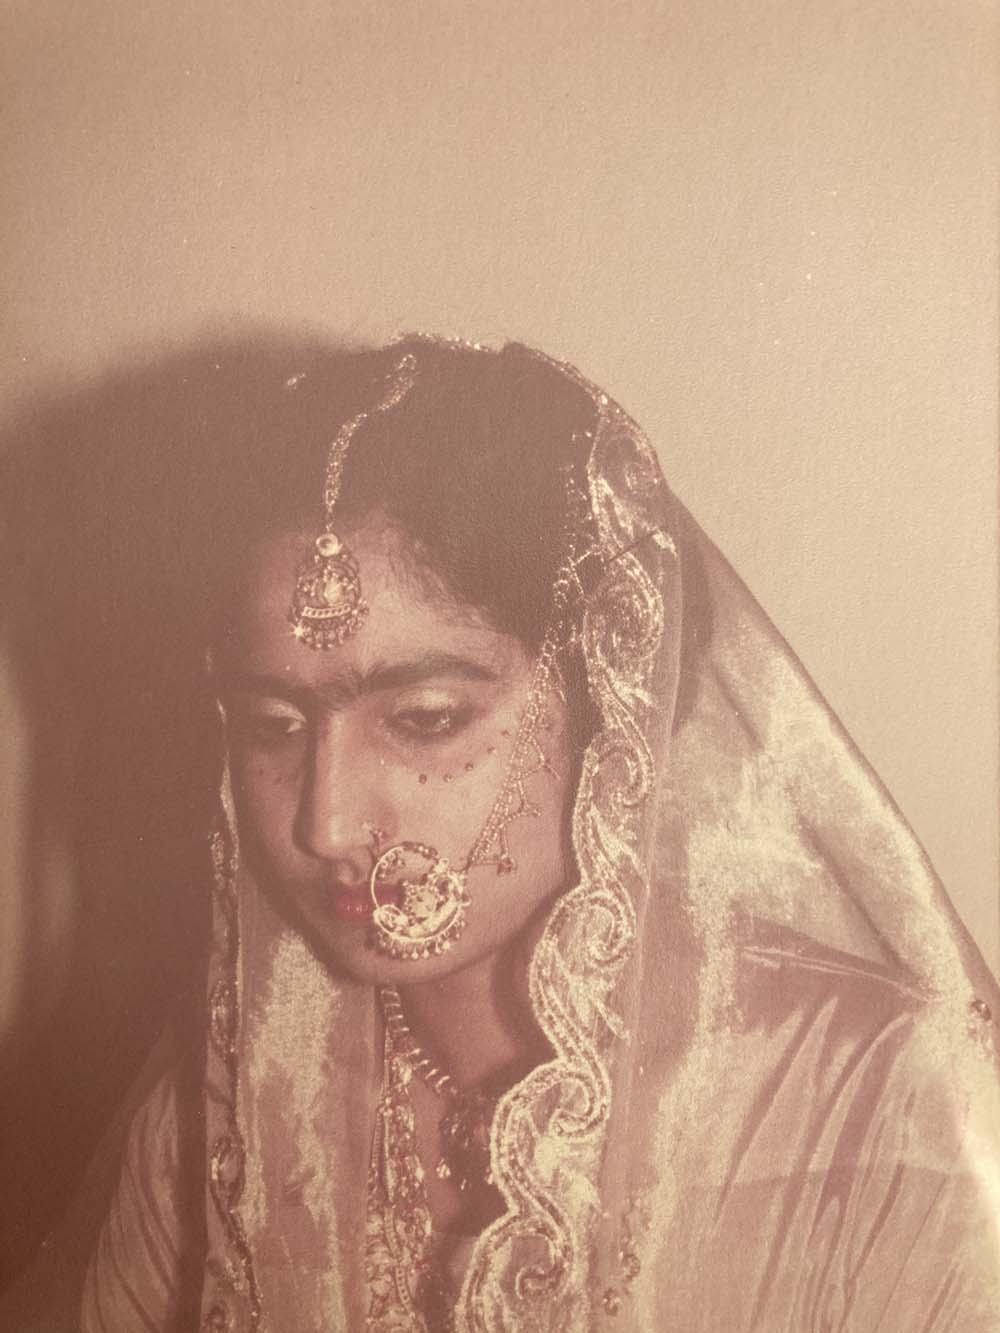 An old photo of the author's mother at a wedding, wearing red and gold jewellery, including nath (a nose ring and chain)